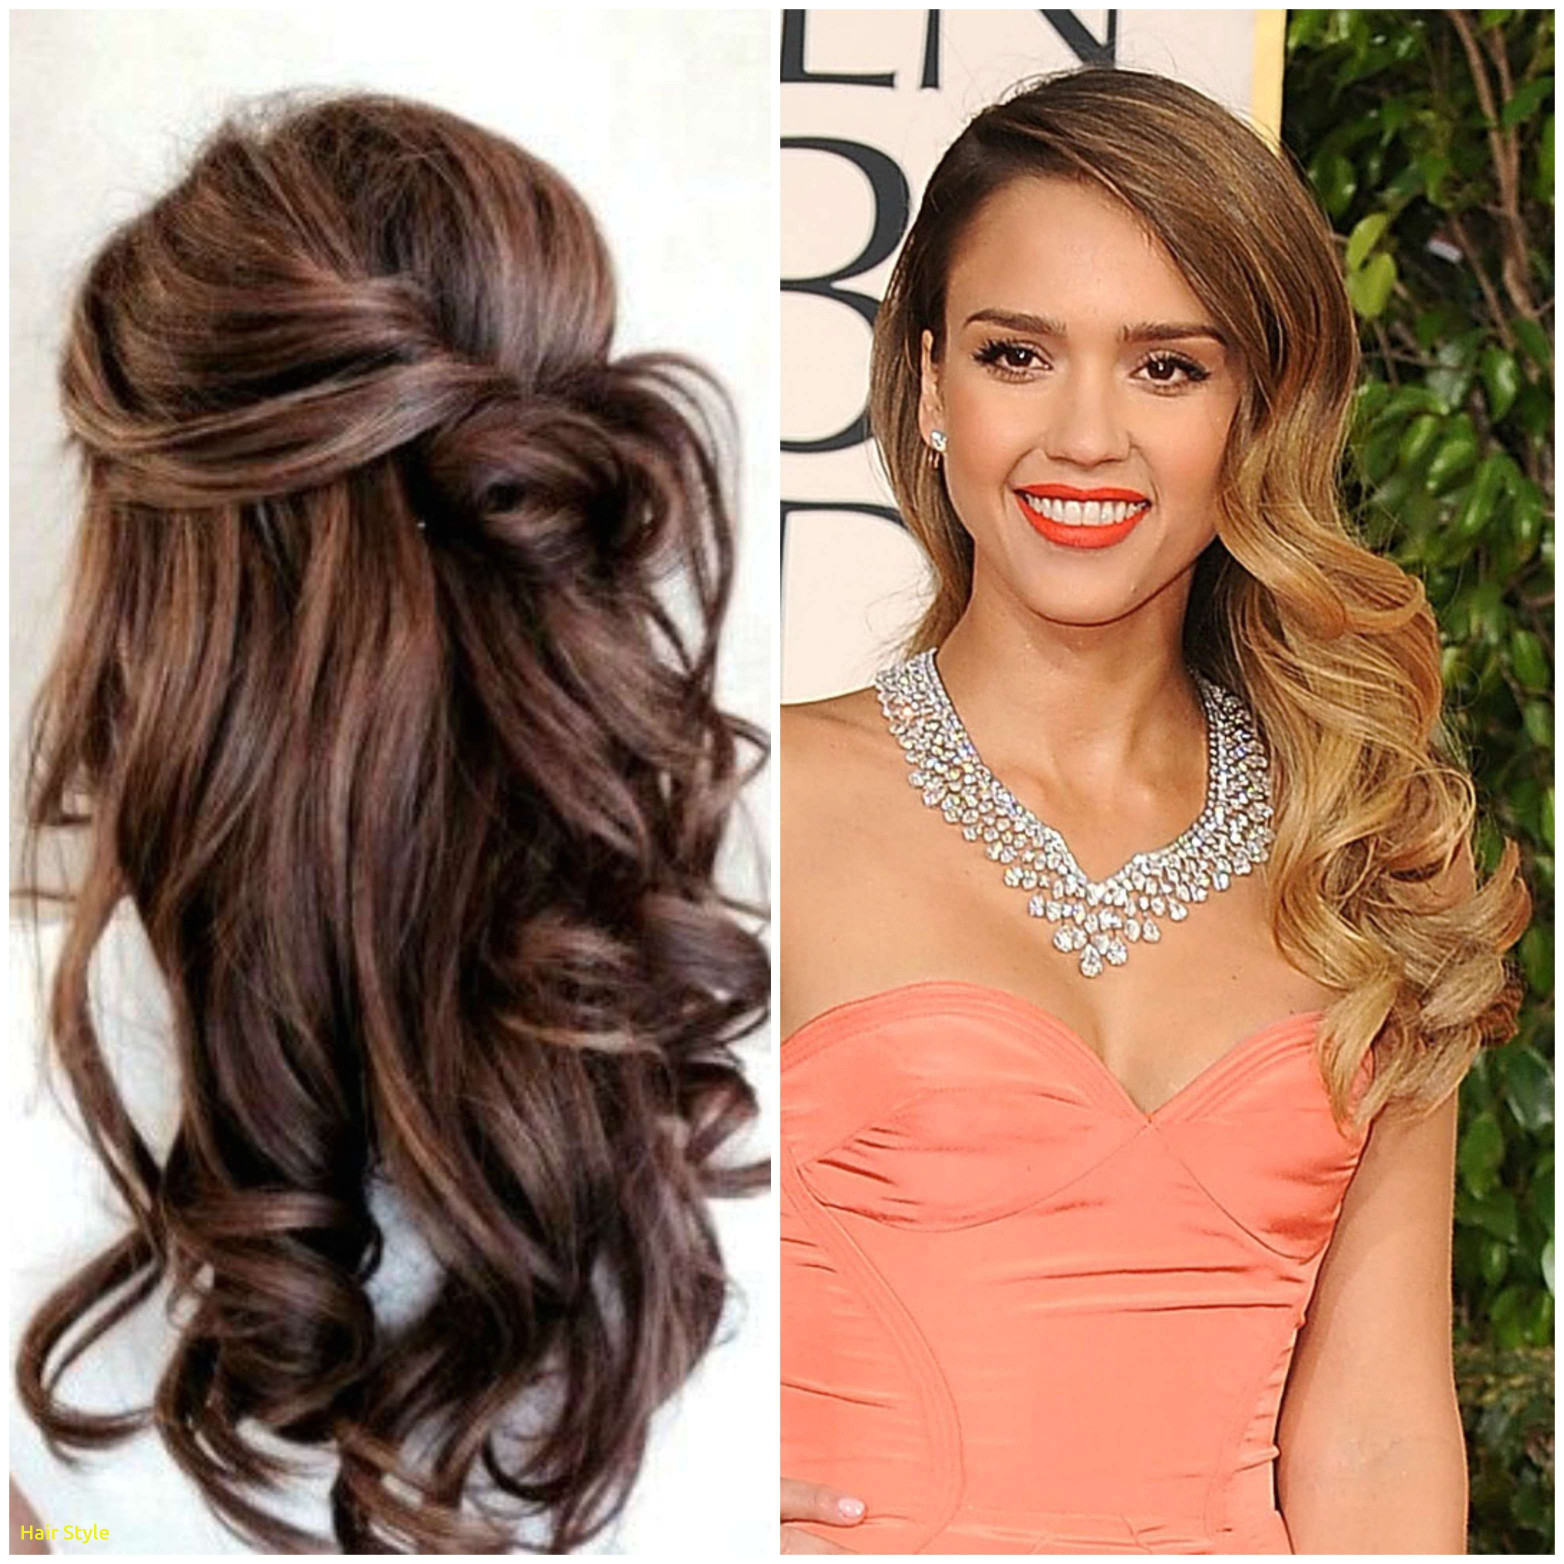 long hairstyles for wedding inspirational hairstyles for long hair 2015 luxury i pinimg 1200x 0d lange